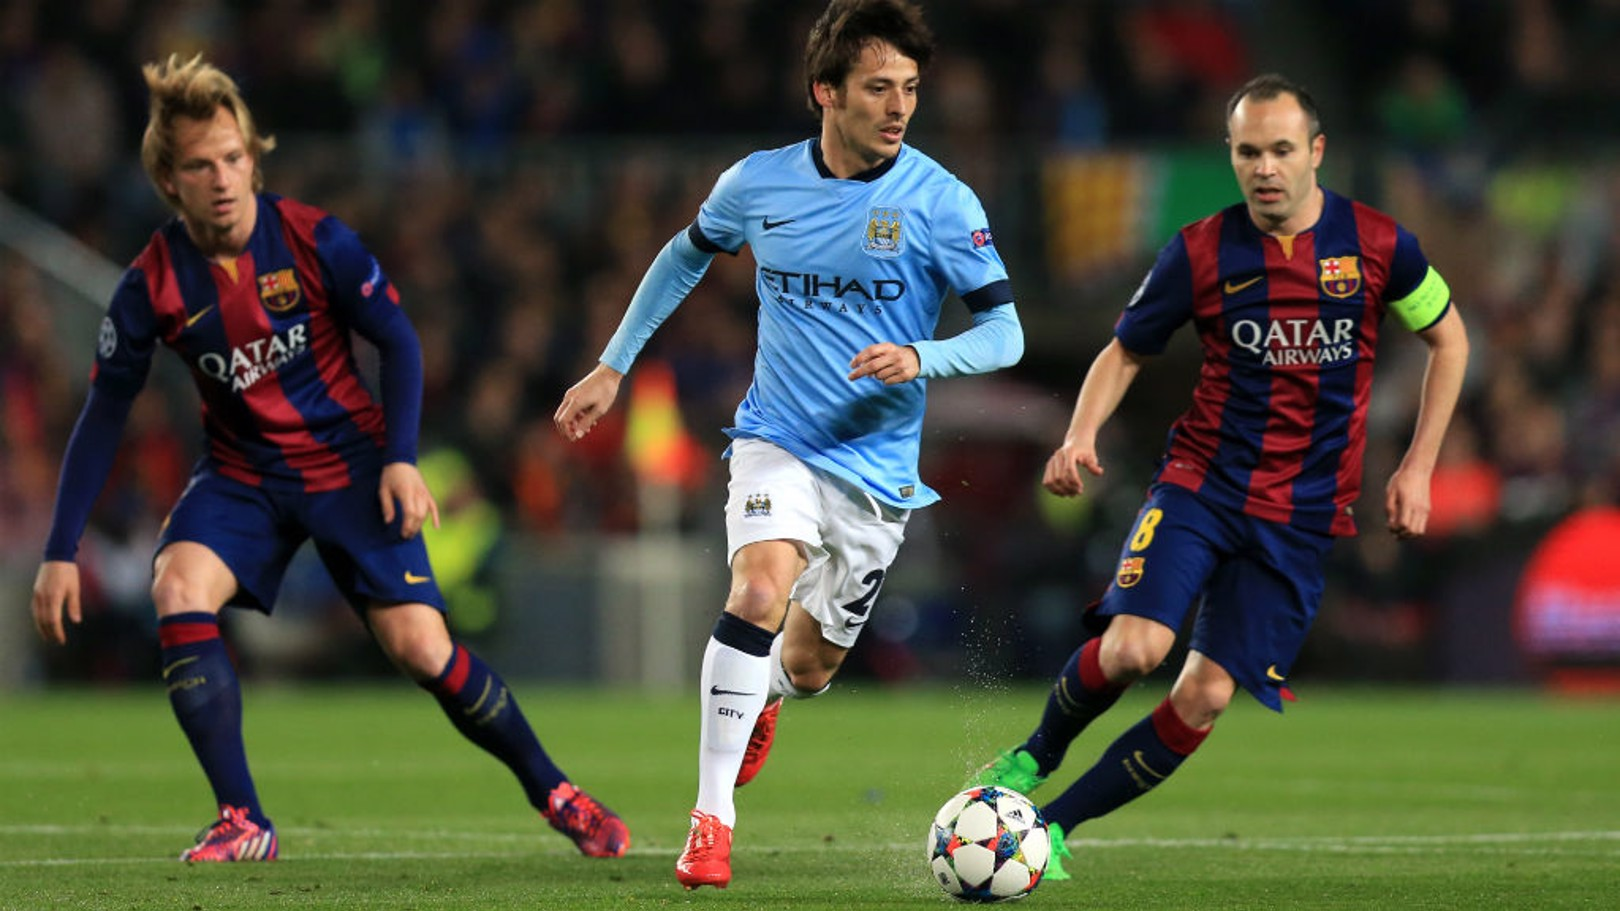 Watch Barca v City for free with BT